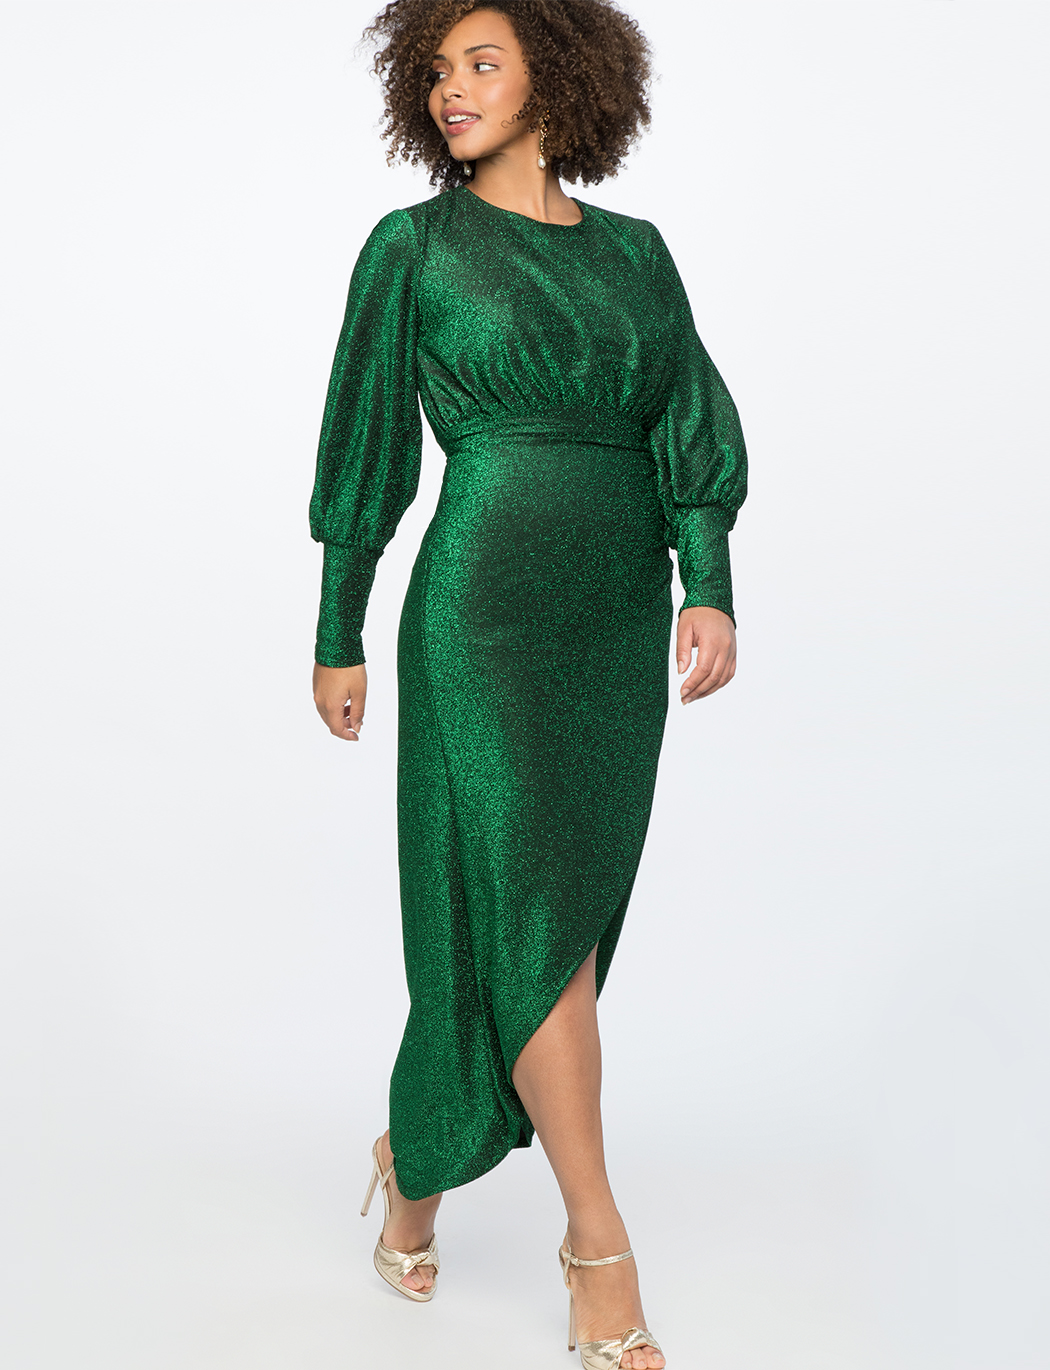 Sparkle Maxi Dress with Wrap Skirt | Women\'s Plus Size Dresses | ELOQUII